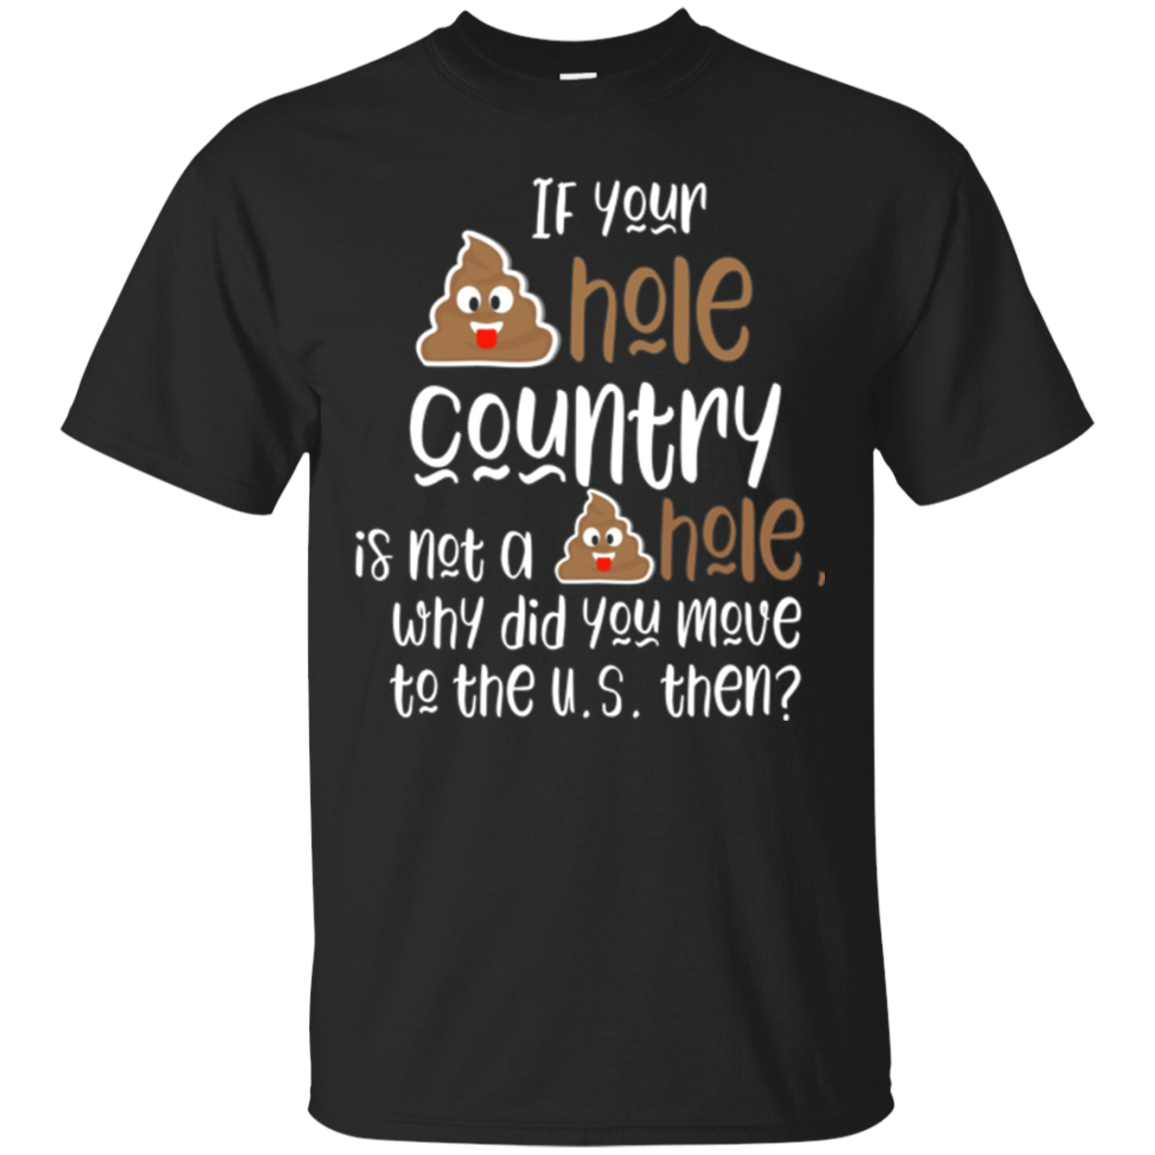 S---hole Country Funny Donald Trump Quotes T Shirt for him a